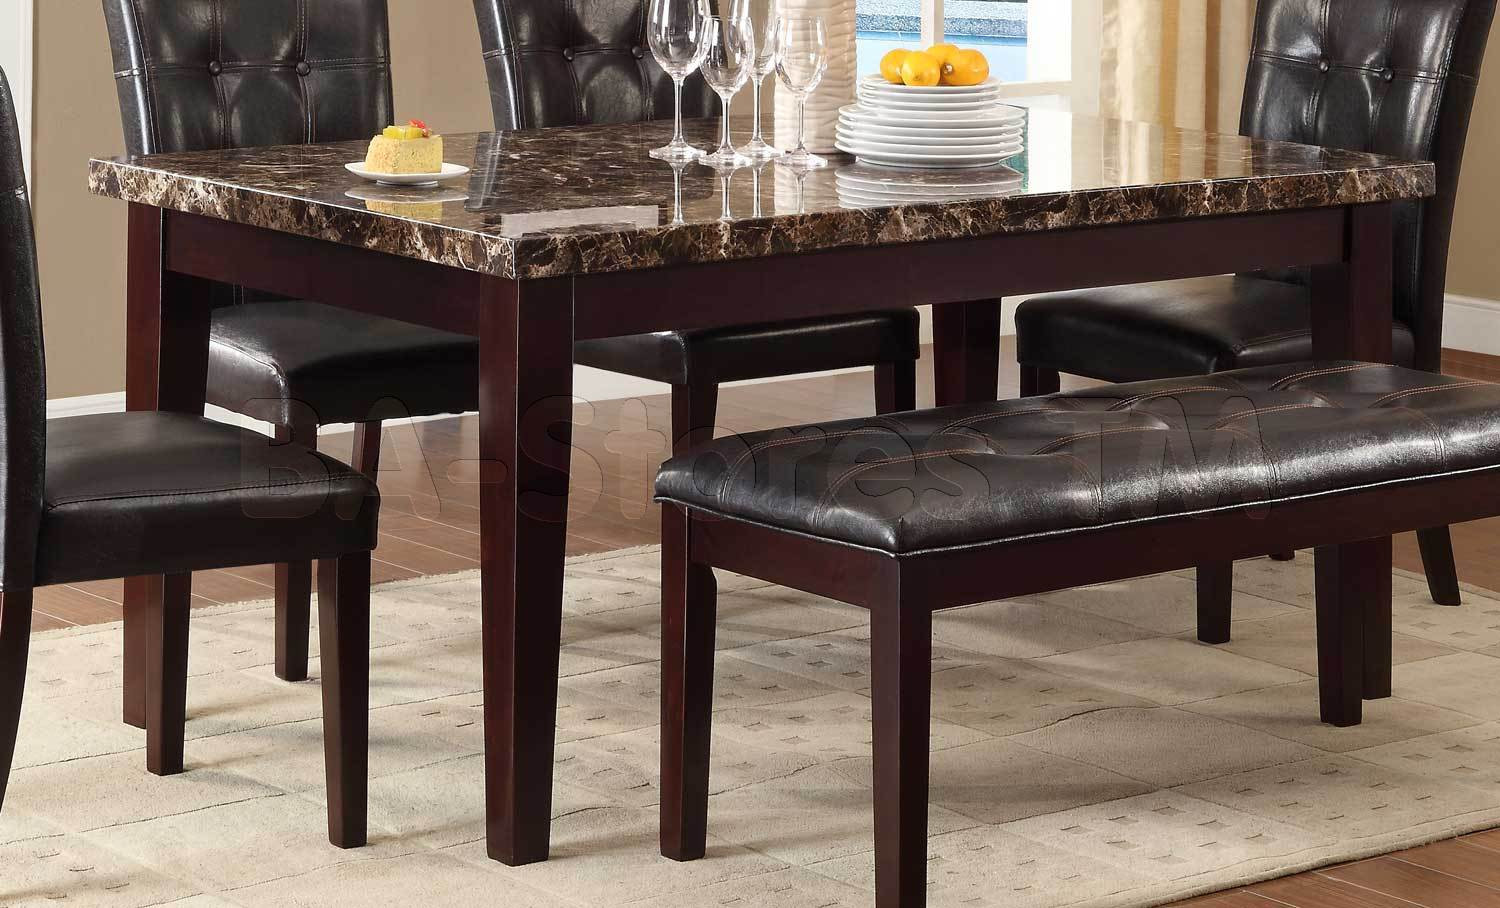 Best ideas about Granite Dining Table . Save or Pin Granite Dining Tables Table For Sale Faux Marble Top Now.